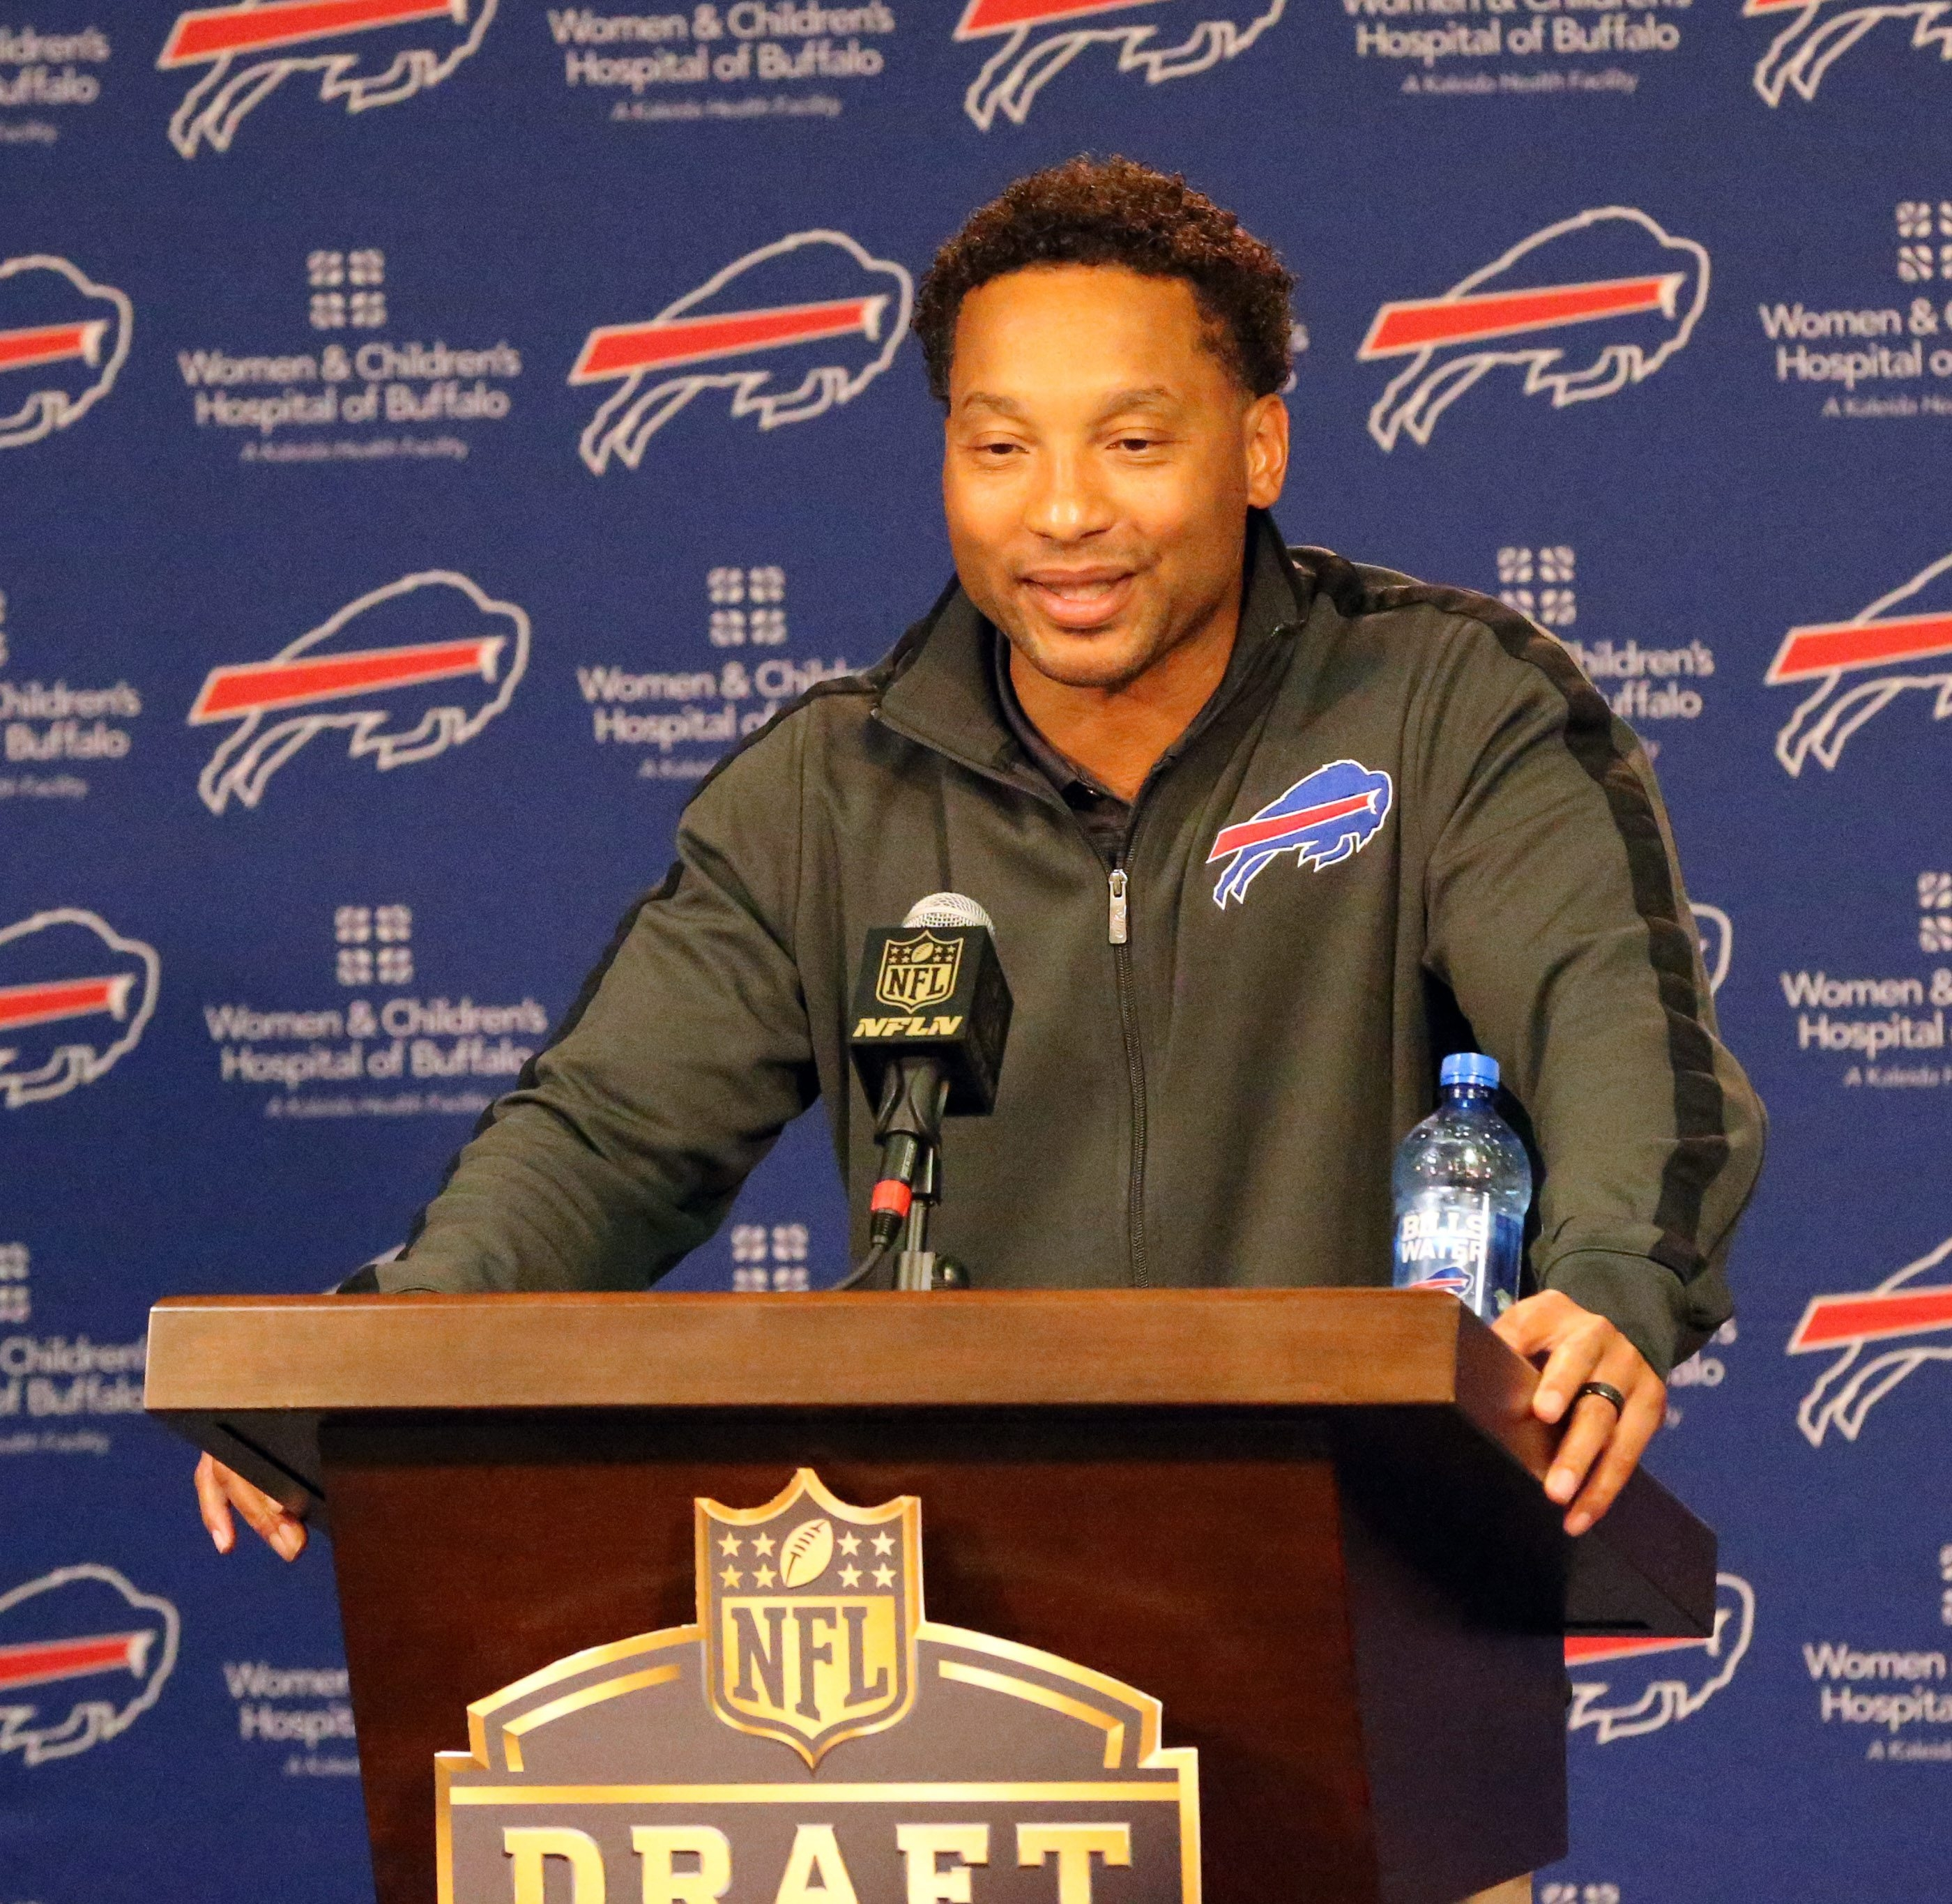 Doug Whaley talks to the press about the first round of the 2015 NFL draft last spring. He wasn't talking about a quarterback.